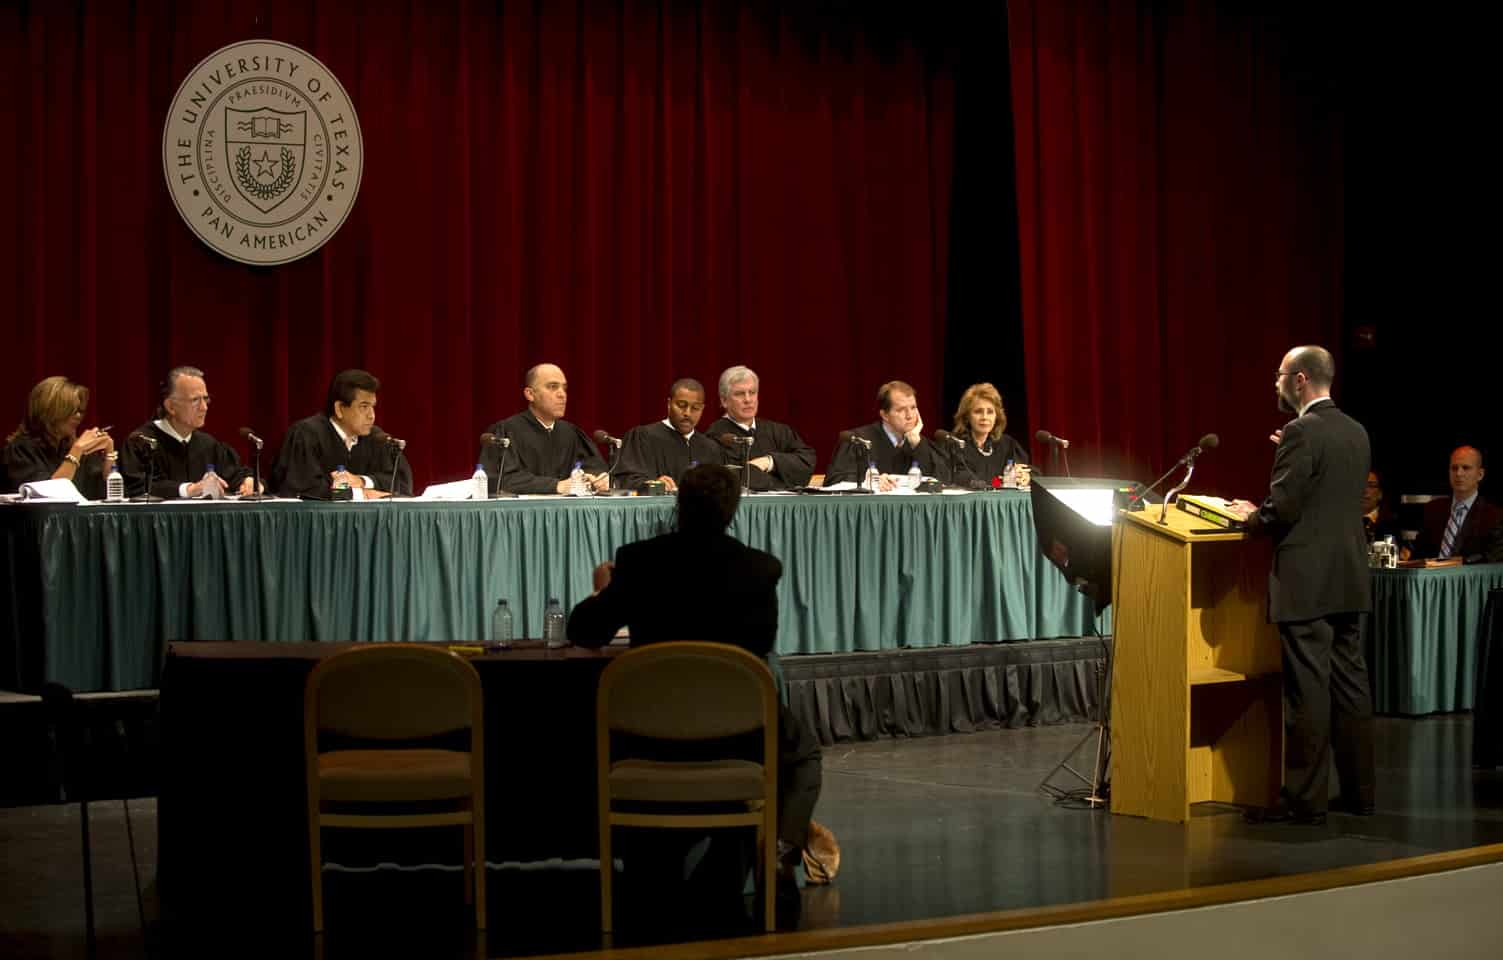 Dallas Appellate Lawyer Chad Ruback argues before the Texas Supreme Court